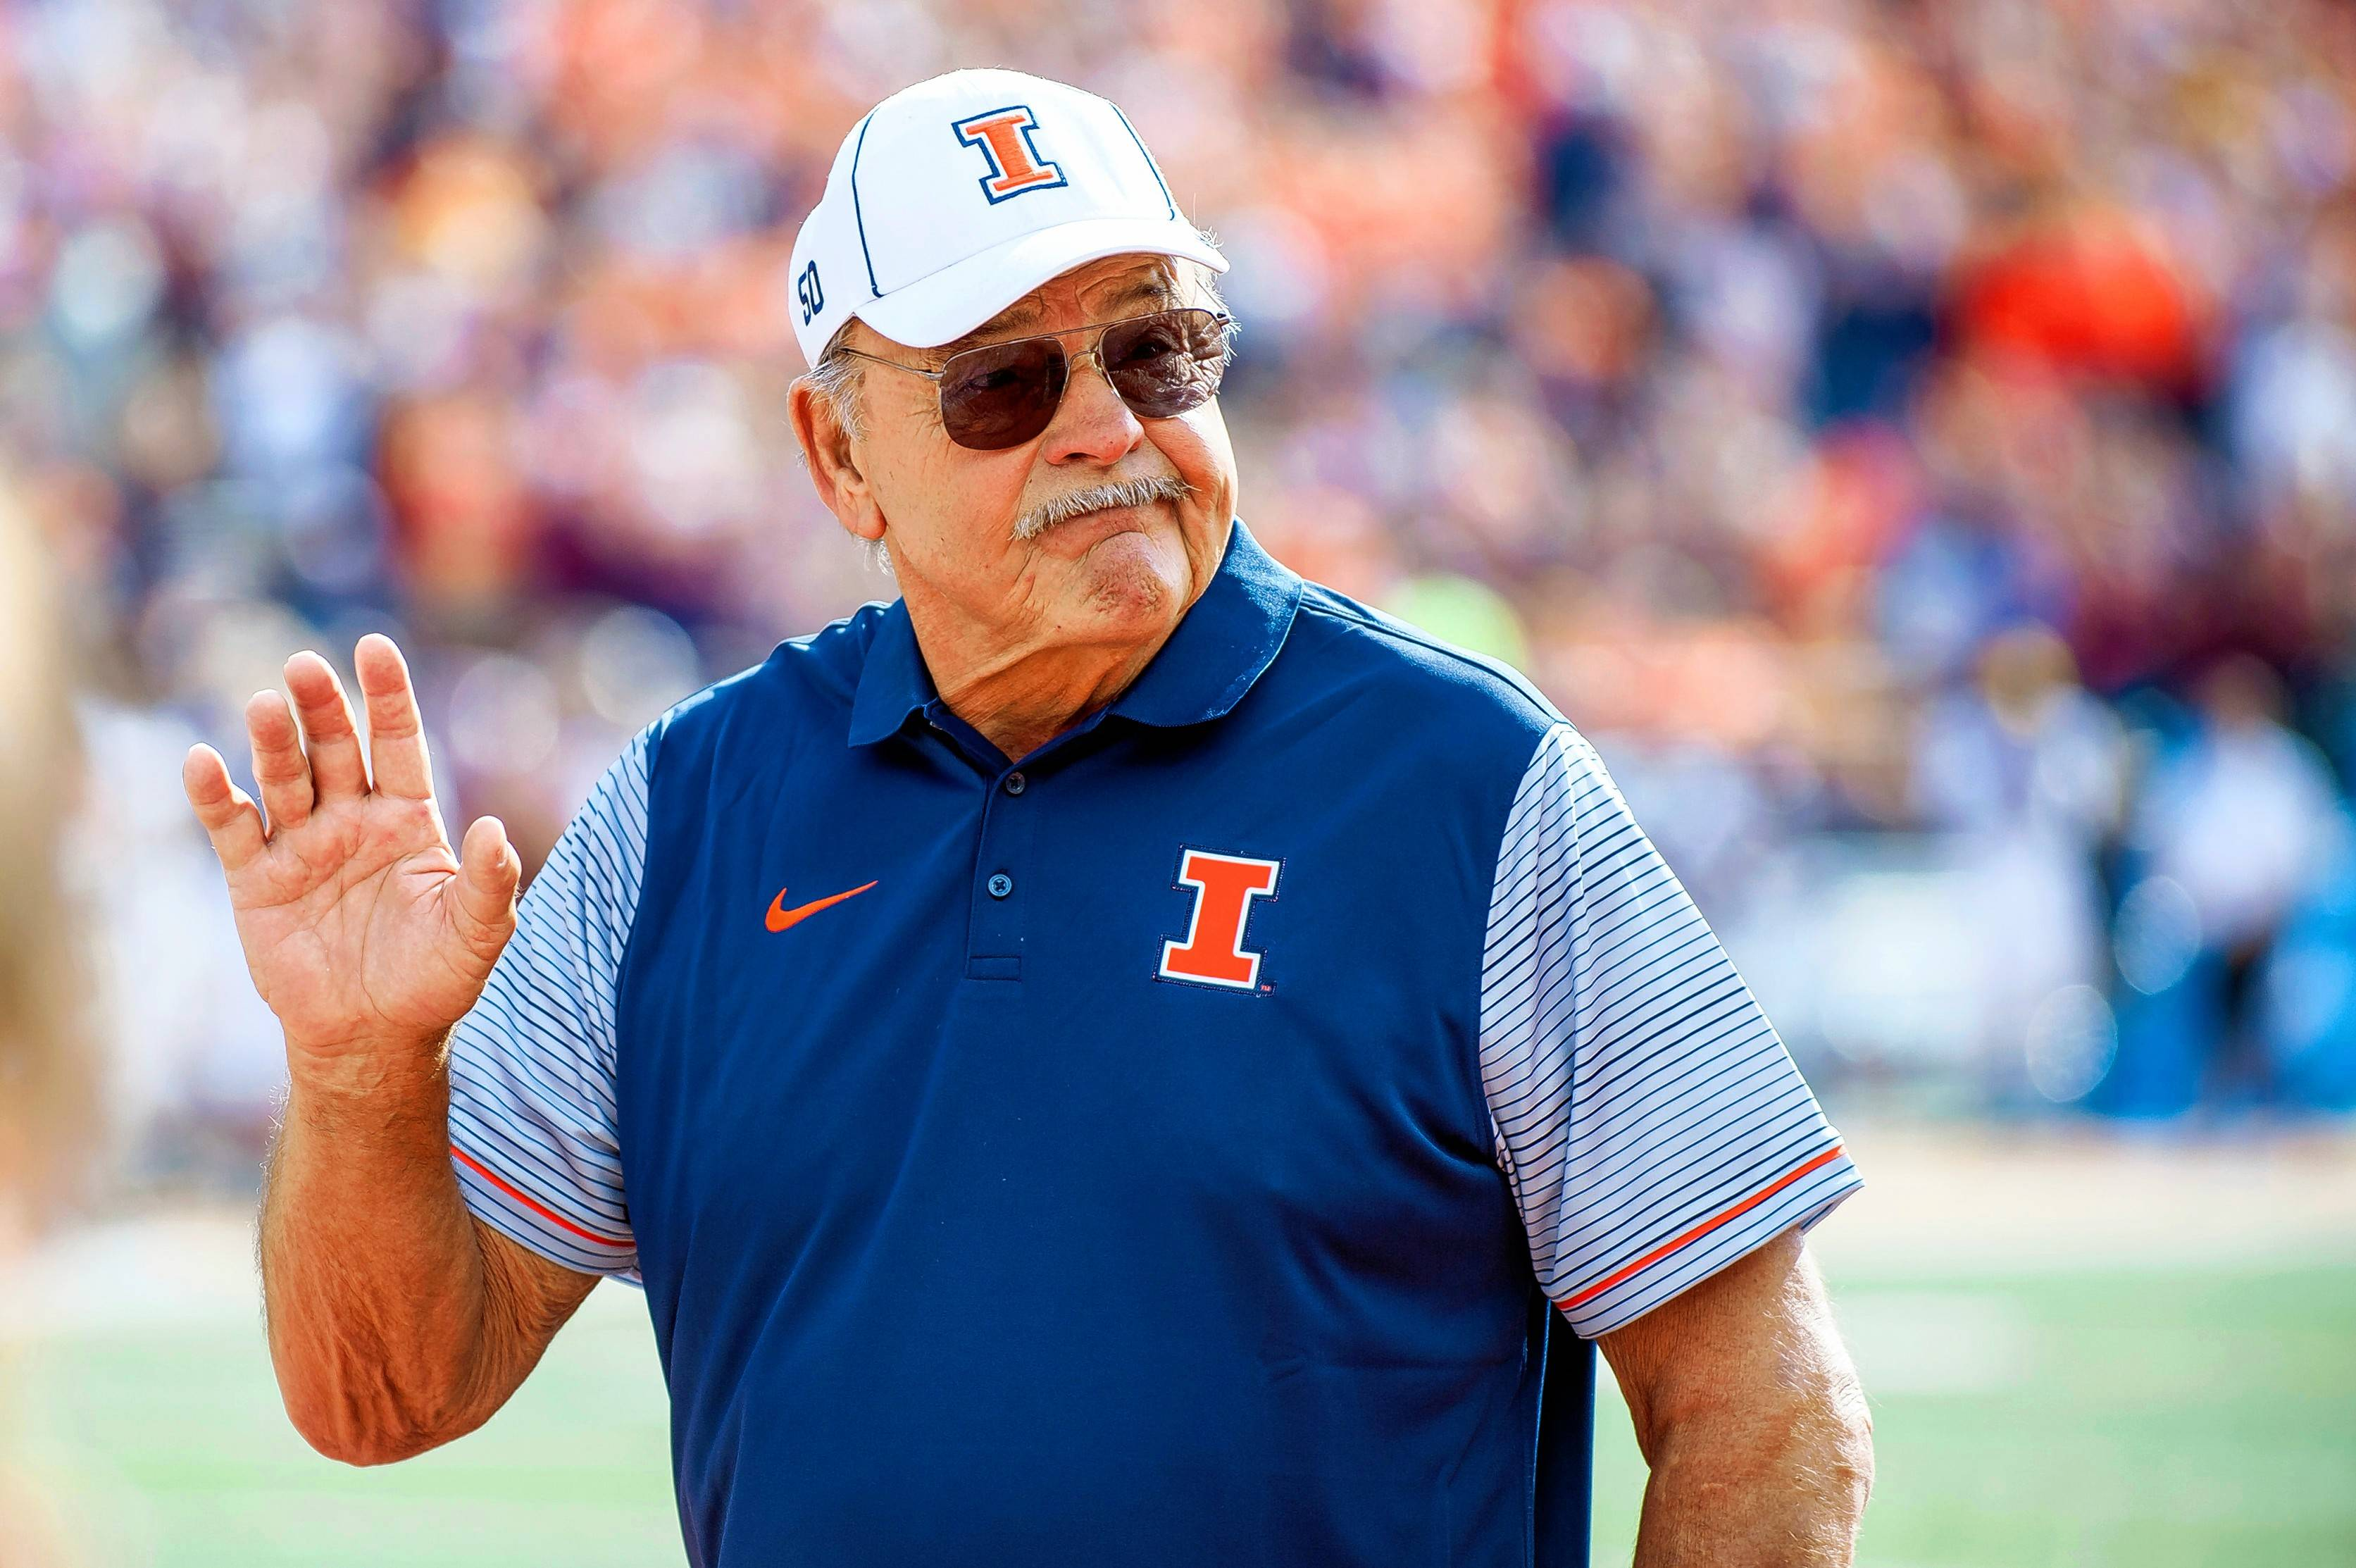 Dick Butkus, former Illinois and Chicago Bears linebacker, will be honored by the University of Illinois with a bronze statue.